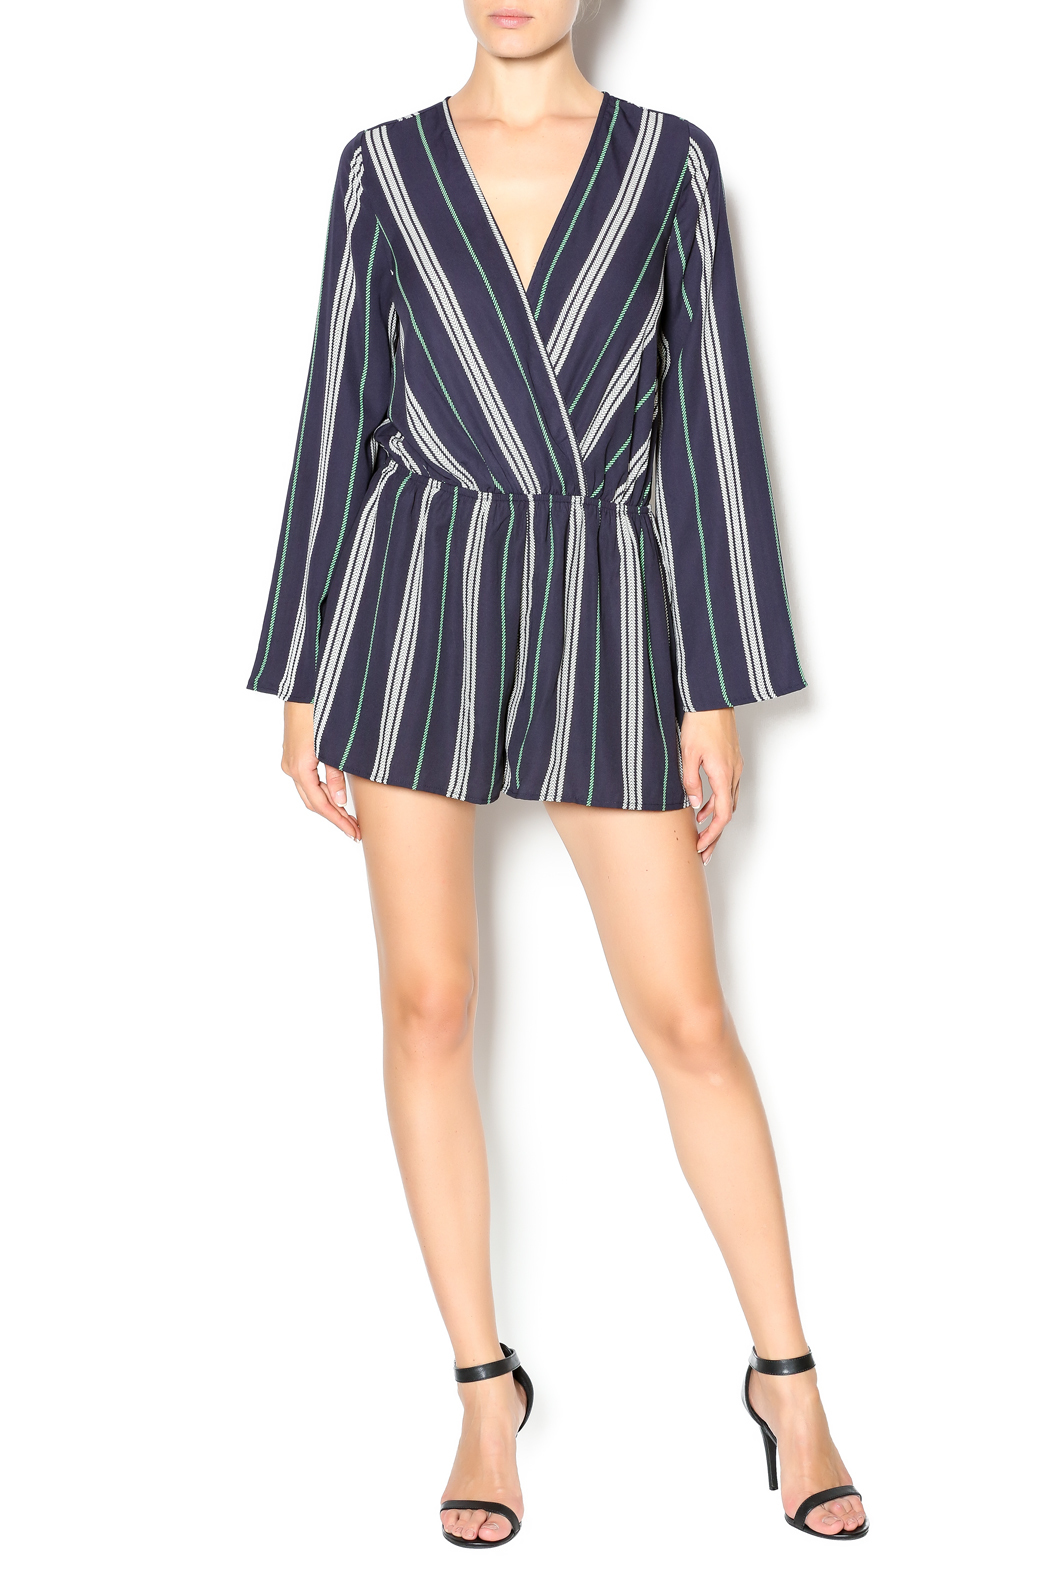 Illa Illa Navy Striped Romper - Front Full Image